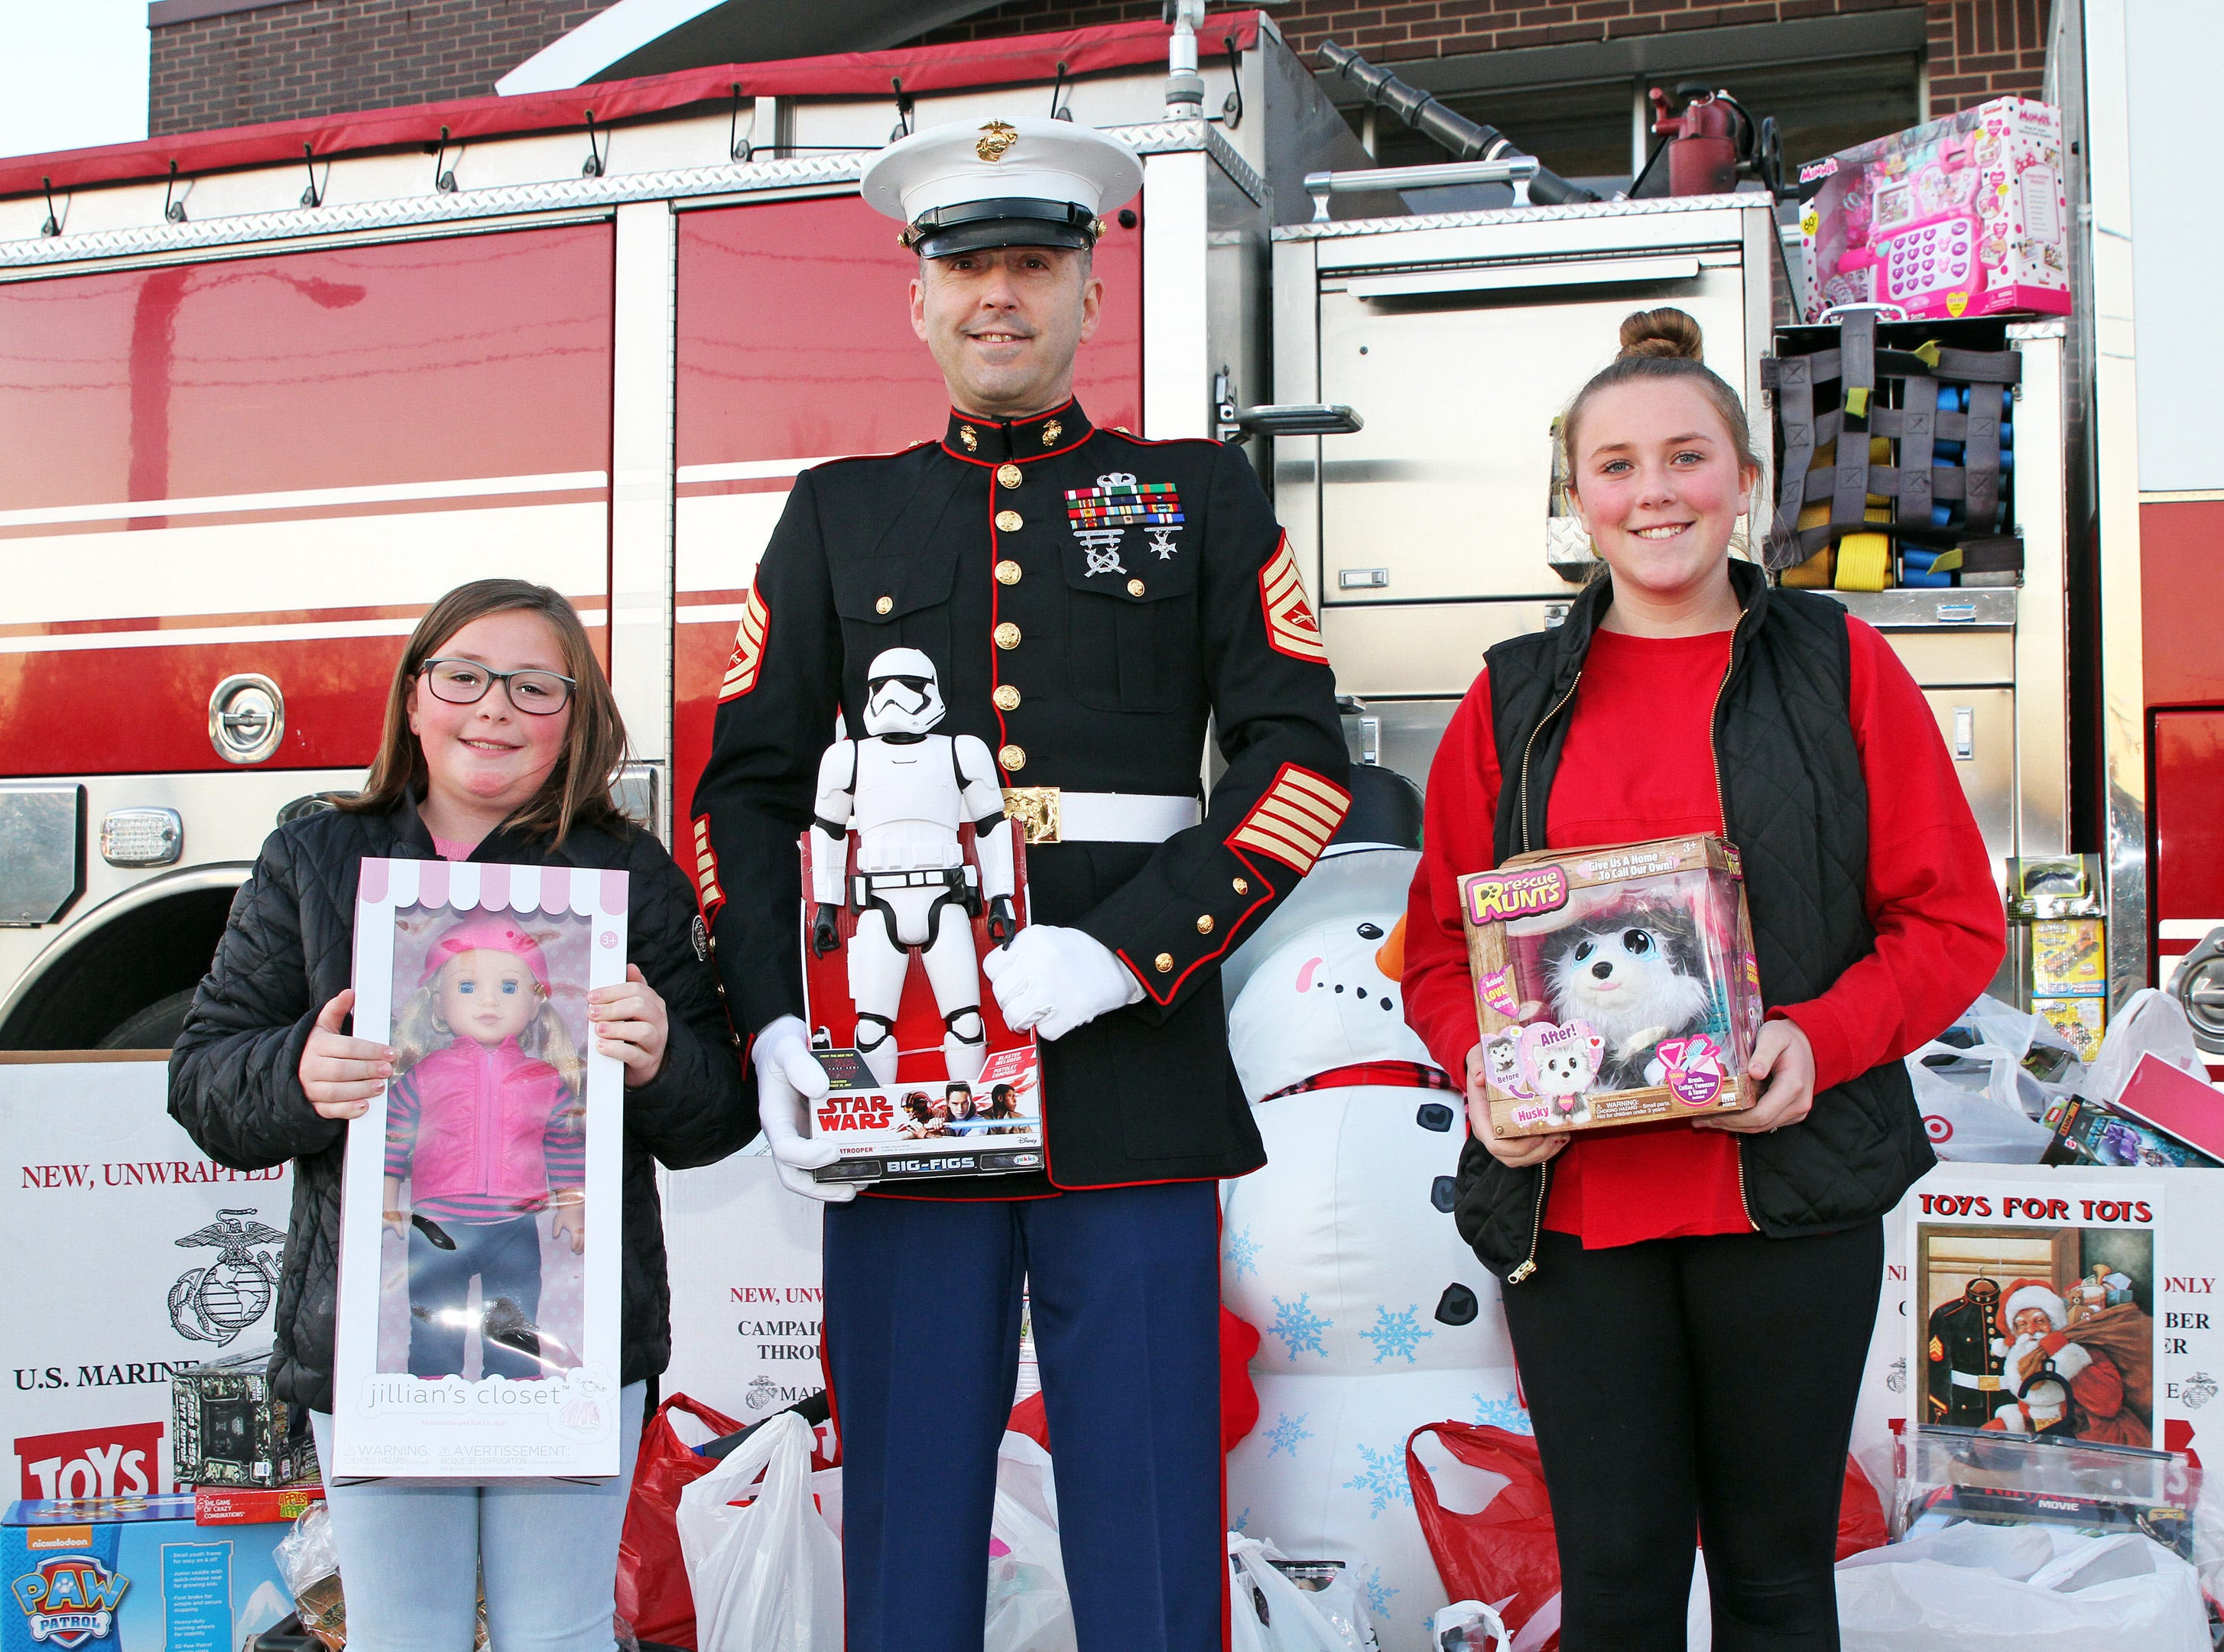 Paisley, 8, and Avery Gavin, 12, of Ankeny help retired Marine Gunnery Sgt. Mark Amann, current member of the Ankeny Fire Department, as gifts are dropped off at Ankeny's fill the truck day during the U.S. Marine Corps Toys for Tots campaign at the Ankeny Fire Station Headquarters on Sunday, Dec. 16, 2018.